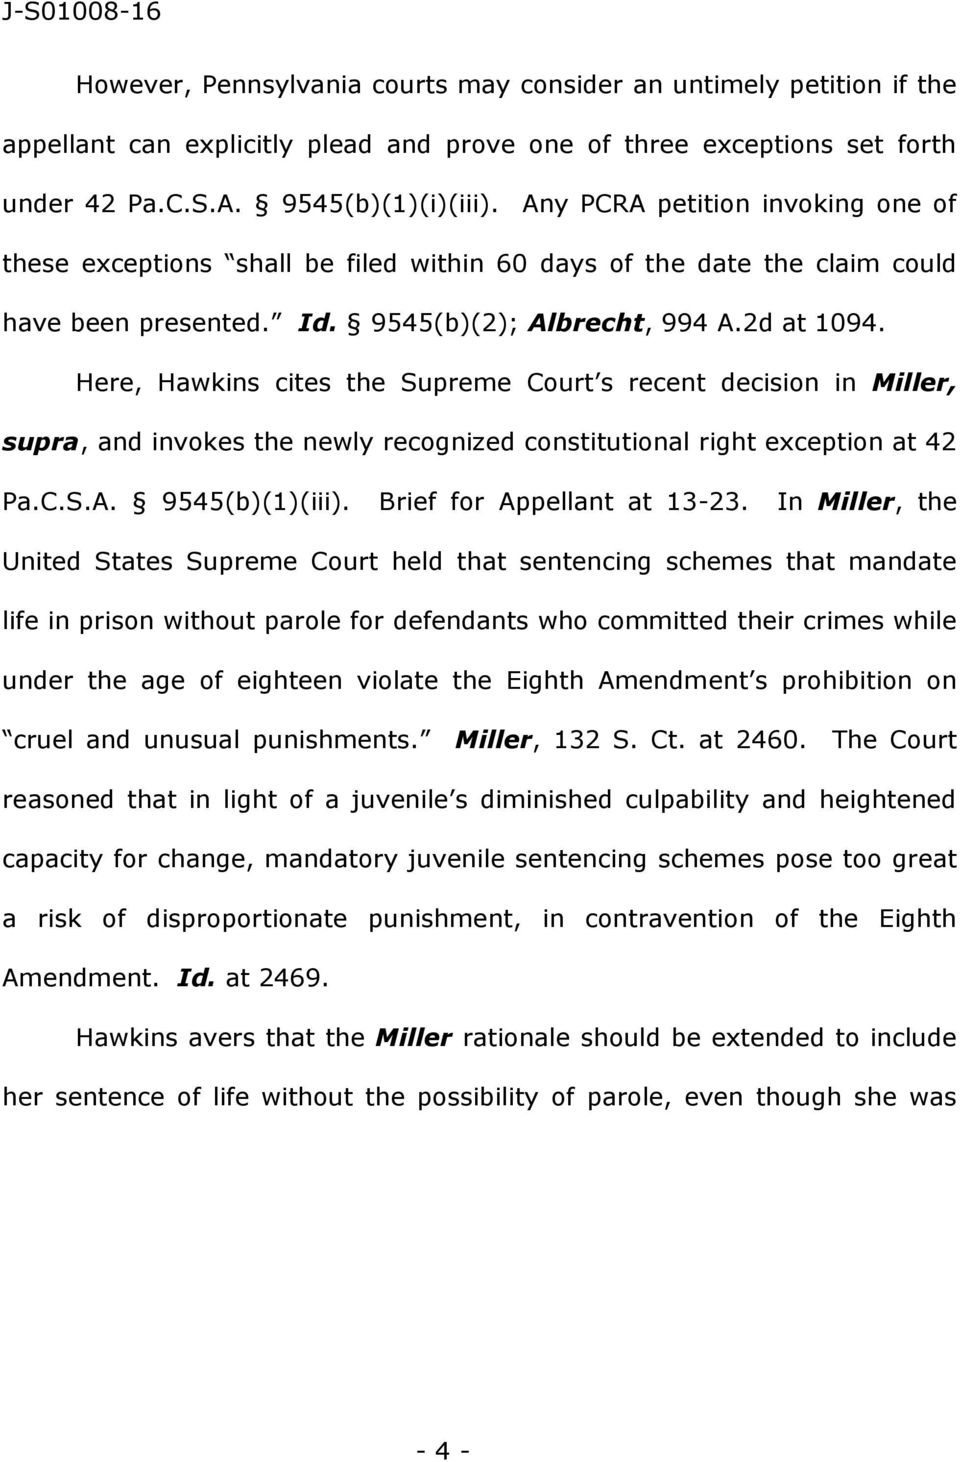 Here, Hawkins cites the Supreme Court s recent decision in Miller, supra, and invokes the newly recognized constitutional right exception at 42 Pa.C.S.A. 9545(b)(1)(iii). Brief for Appellant at 13-23.